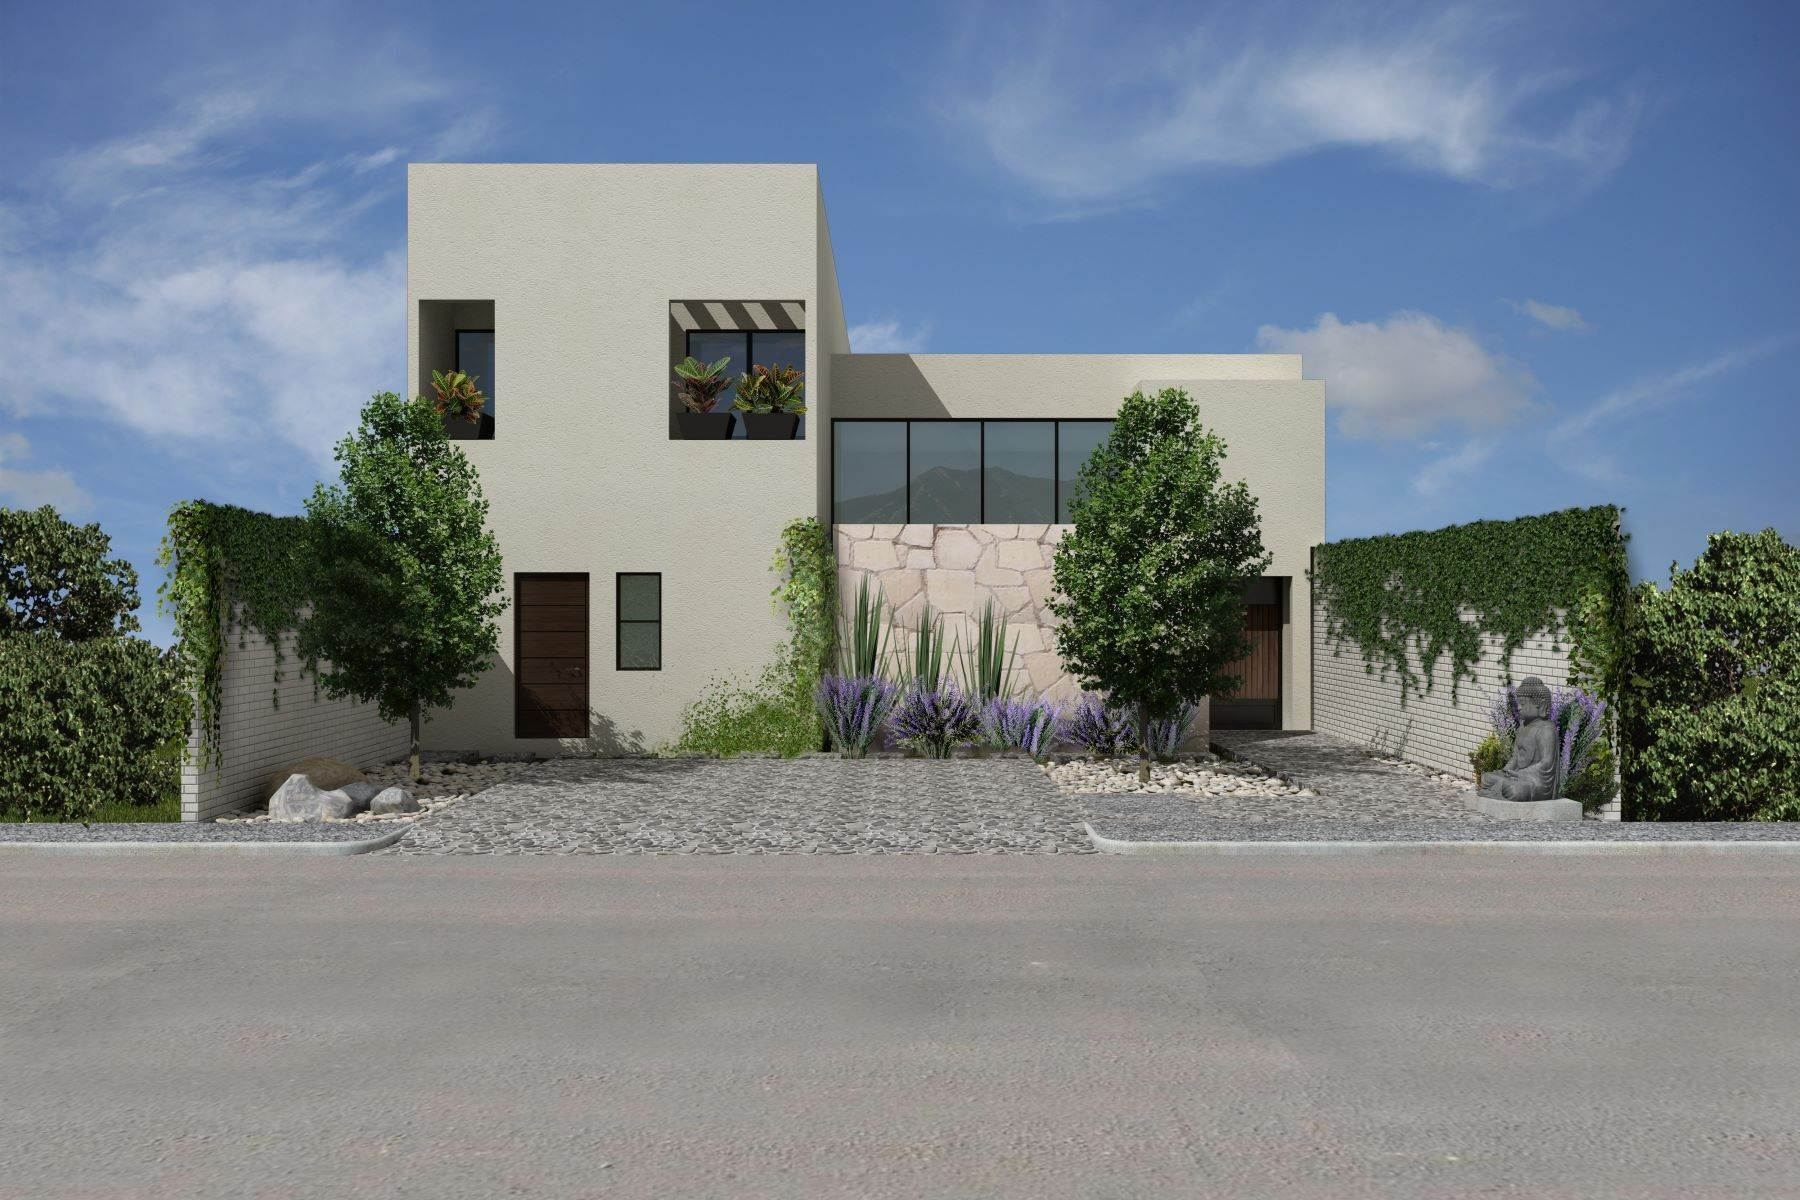 8. Single Family Homes for Sale at Cobalto Residences Fuentes 54 San Miguel De Allende, Guanajuato 37740 Mexico